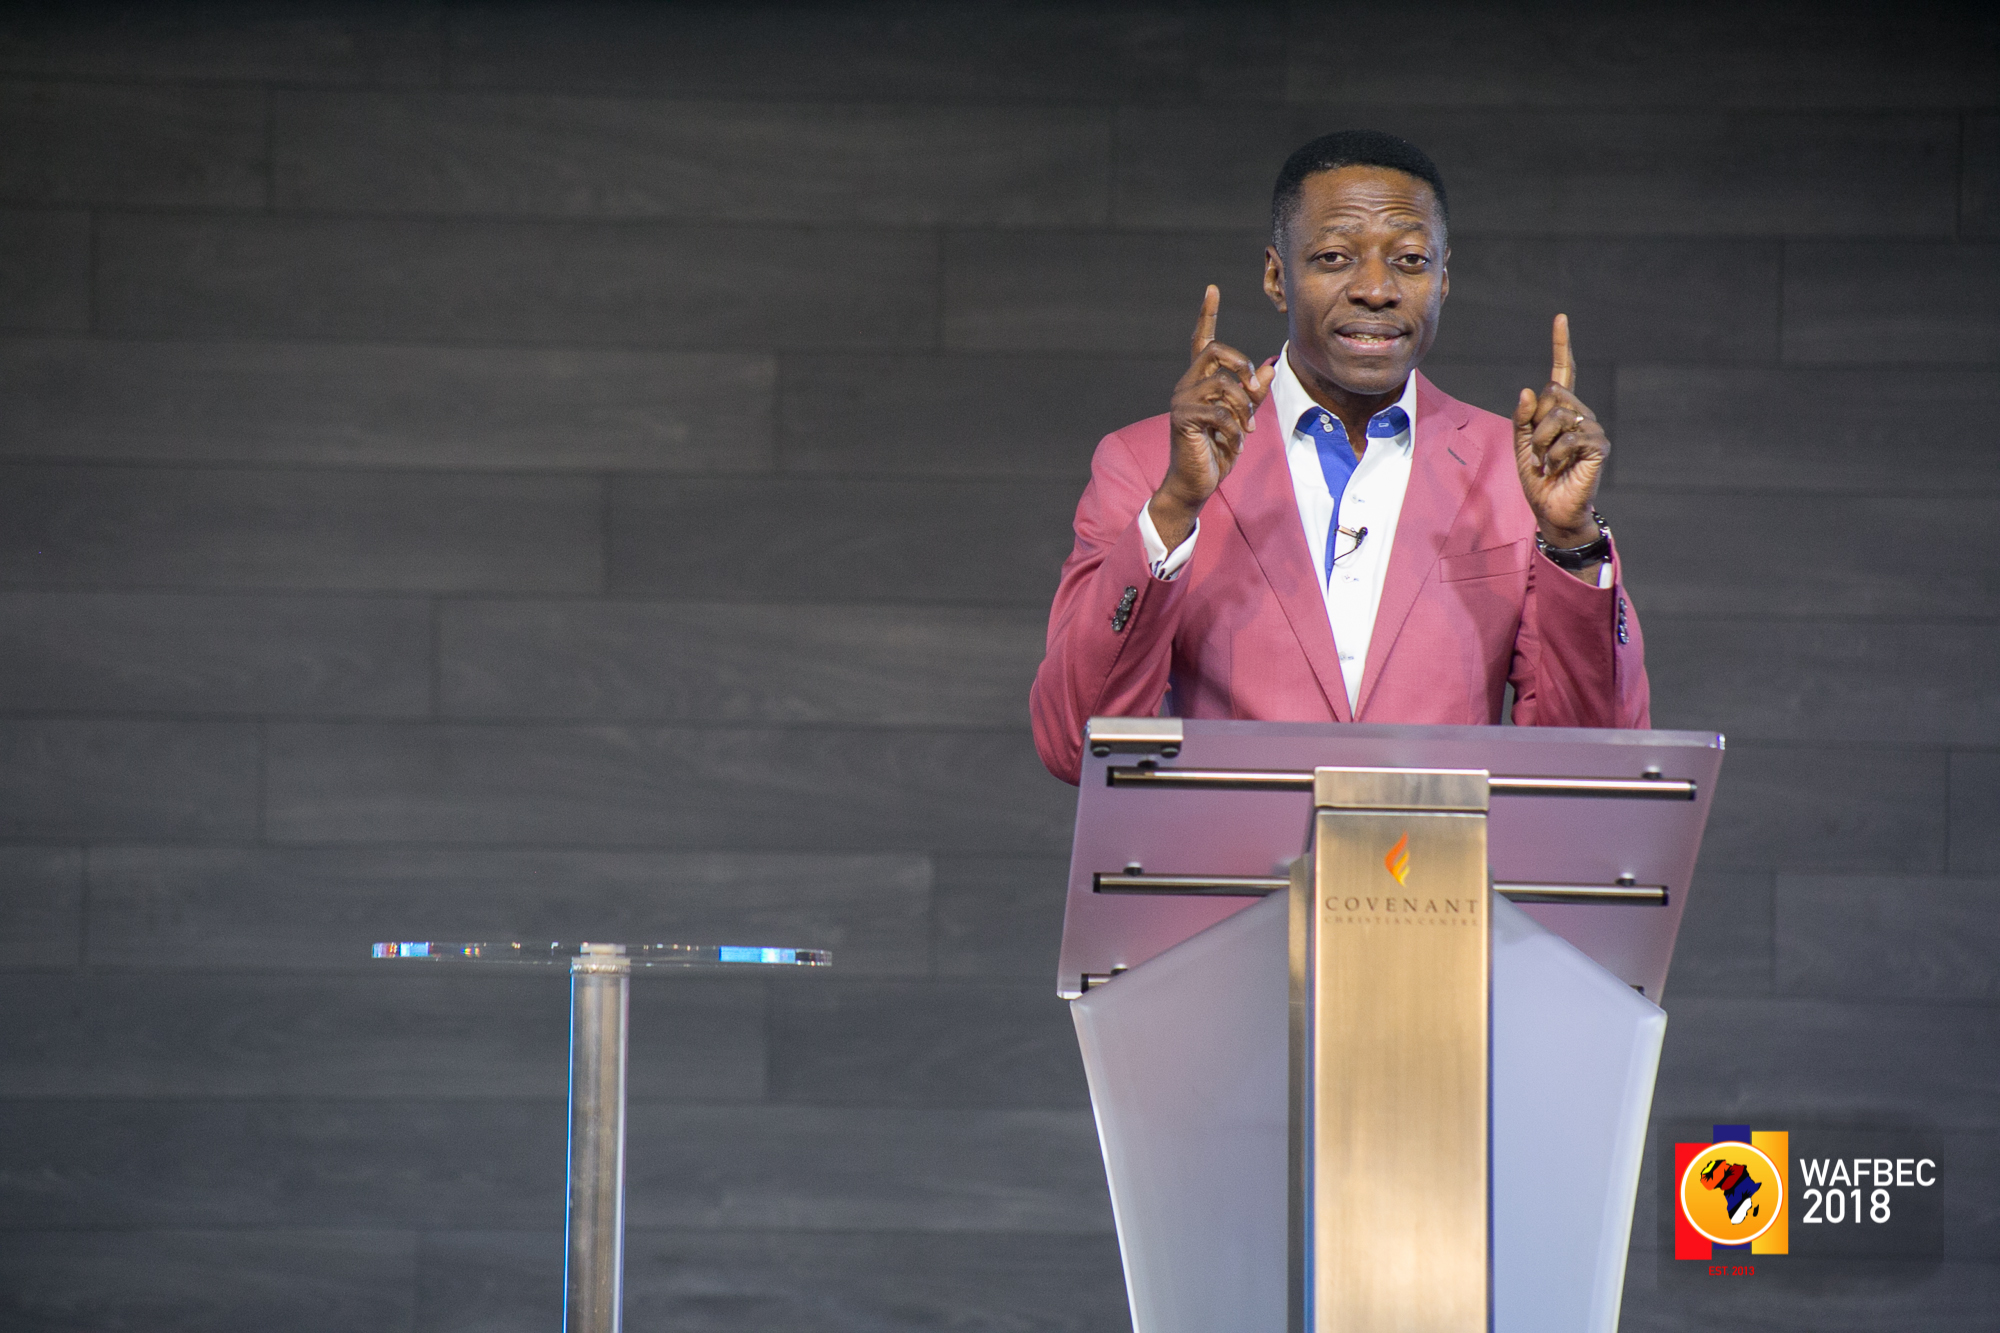 WAFBEC 2018 – (DAY 3 EVENING SESSION 1) with  REV. SAM ADEYEMI